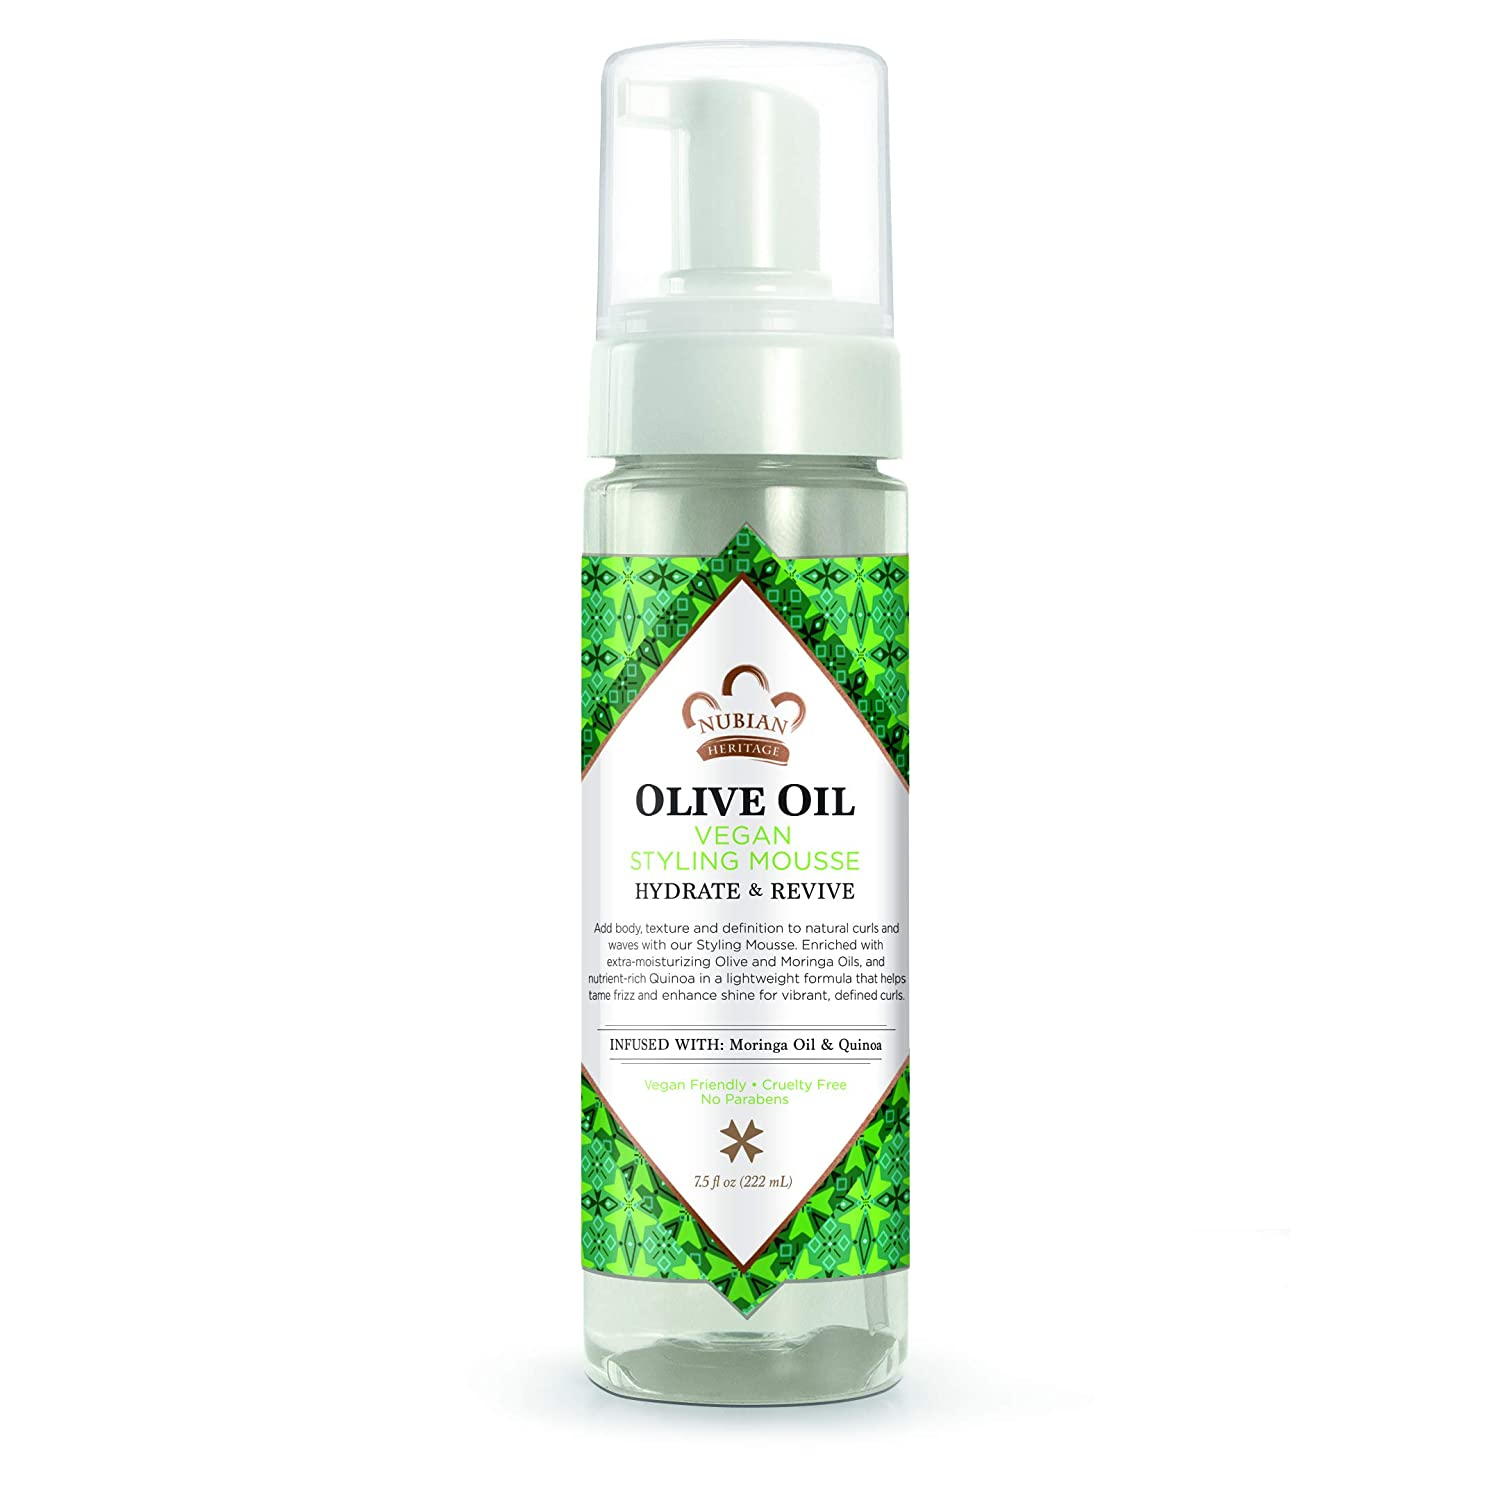 Nubian Heritage Weightless Styling Mousse for Dry Hair, Olive Oil Hair Mousse That Nourishes for Healthy and Hydrated Hair, 7.5 Oz